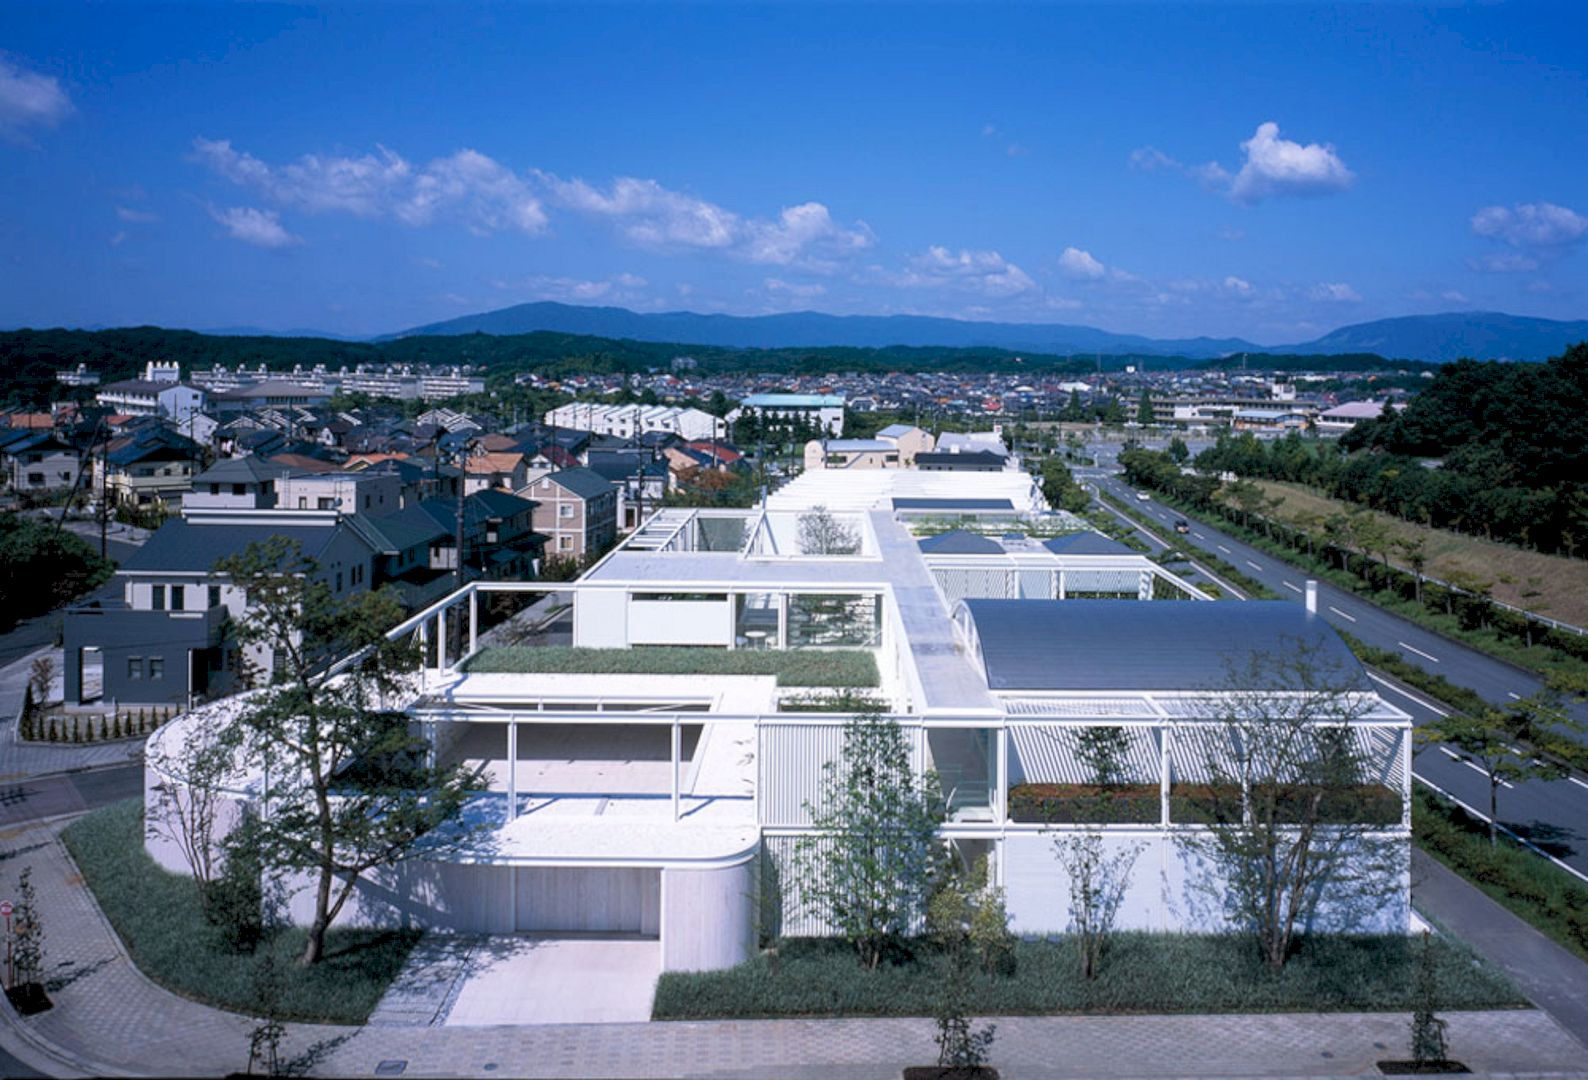 Maison E By Shigeru Ban Architects 3